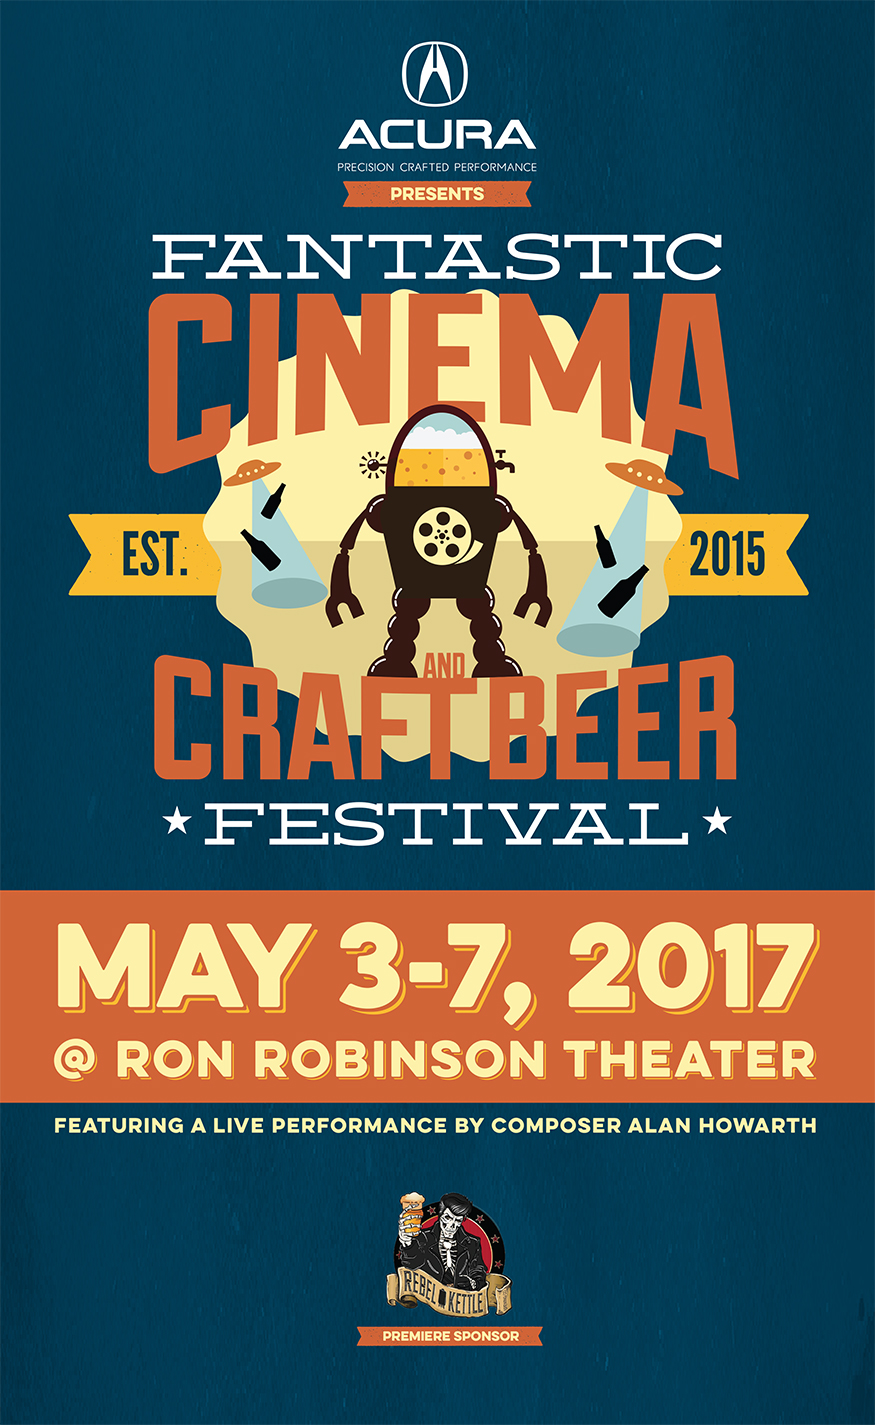 Fantastic Cinema & Craft Beer Festival 2017